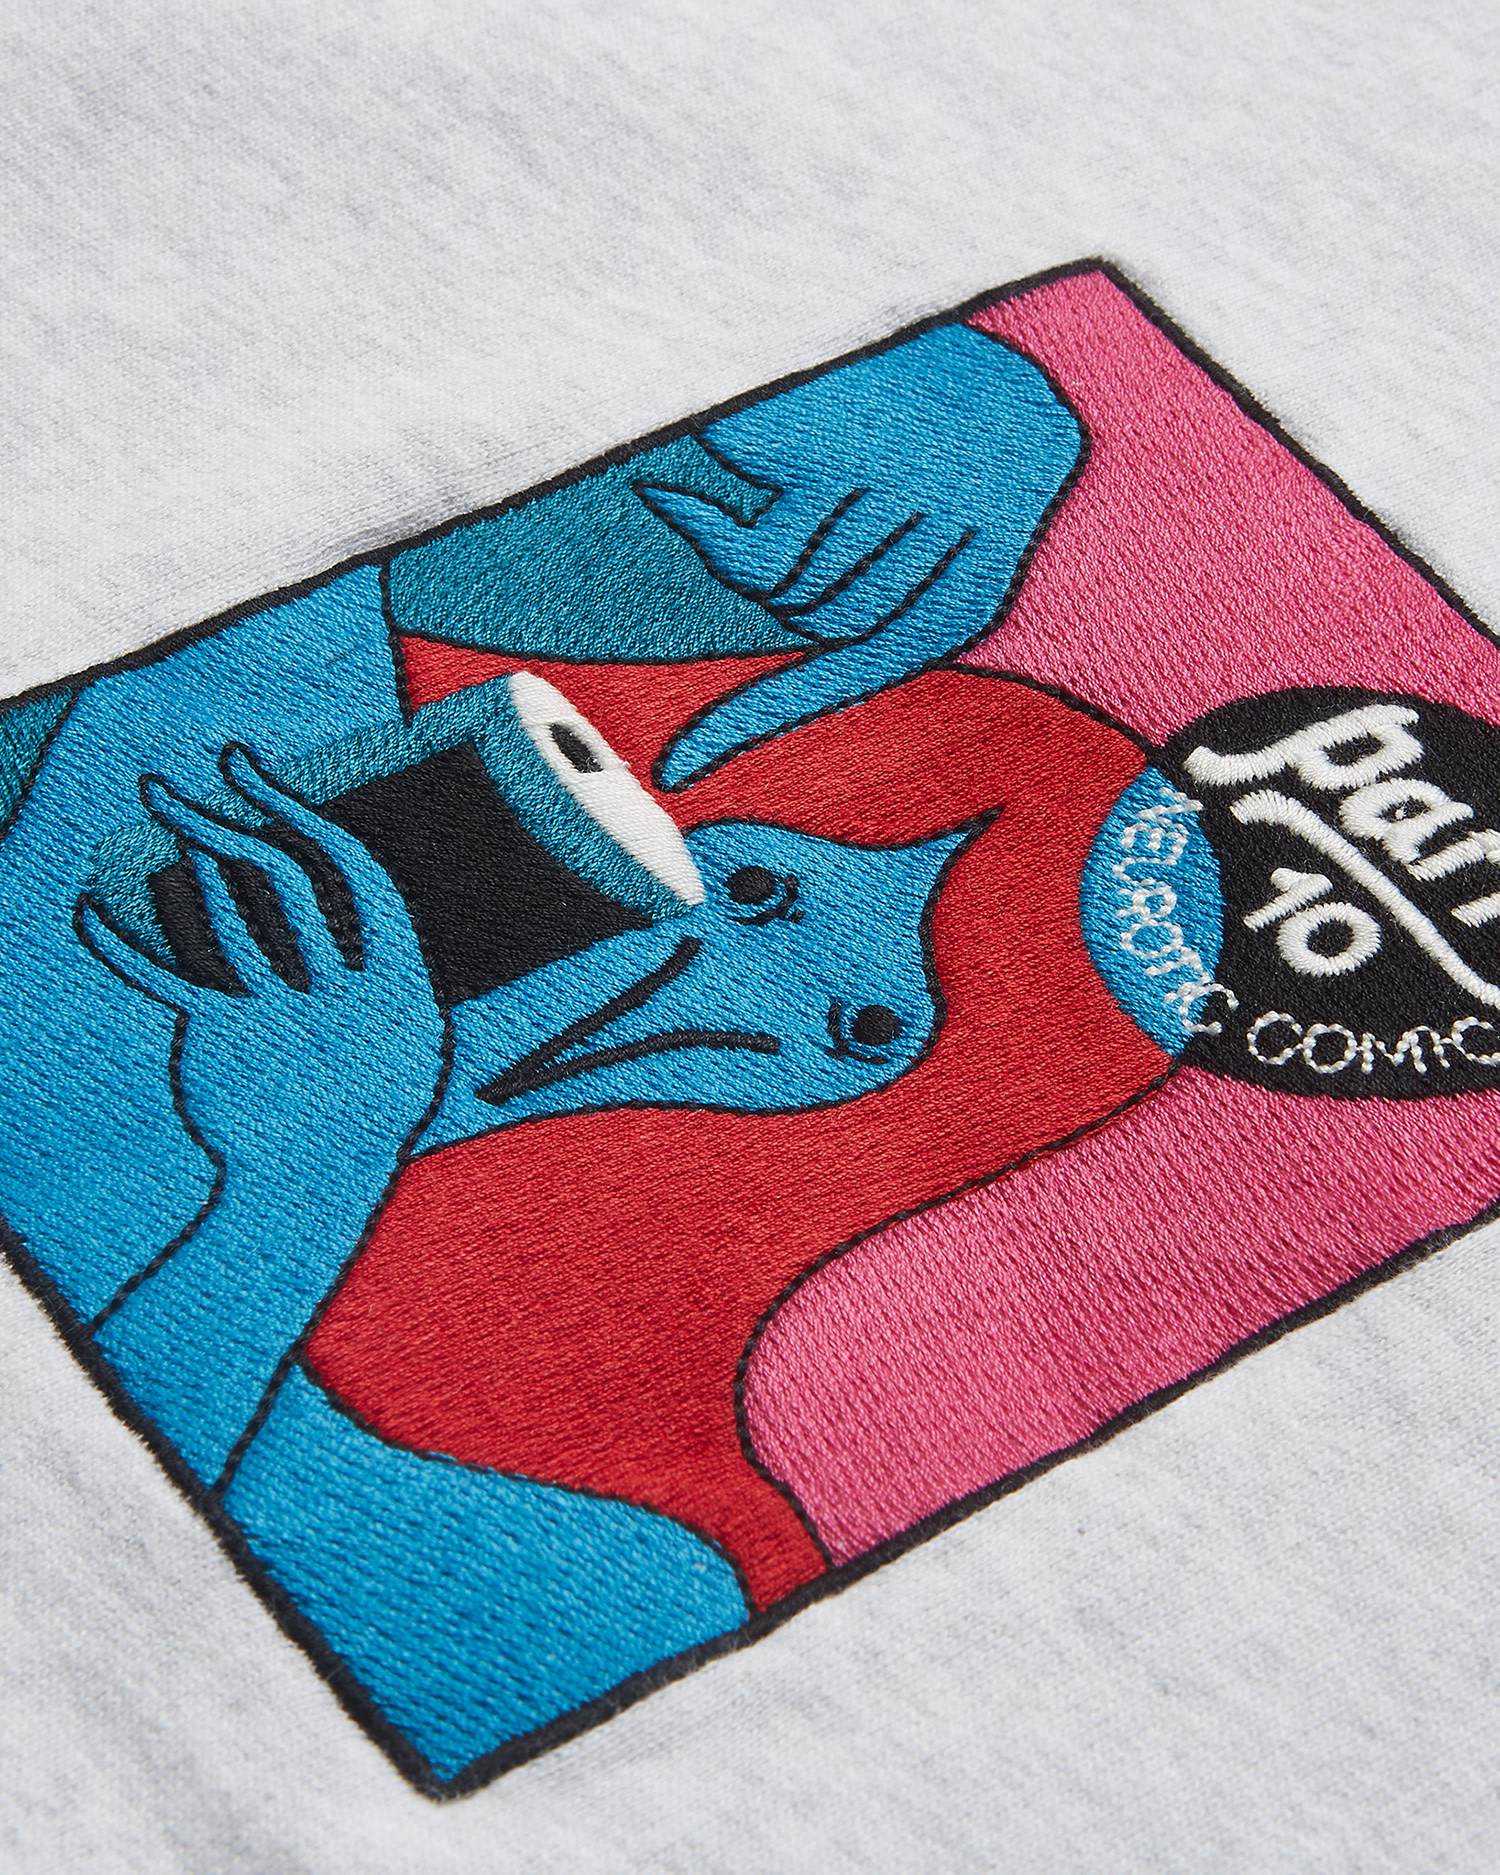 Parra Neurotic Comic Crew Neck Sweatshirt  Ash Grey